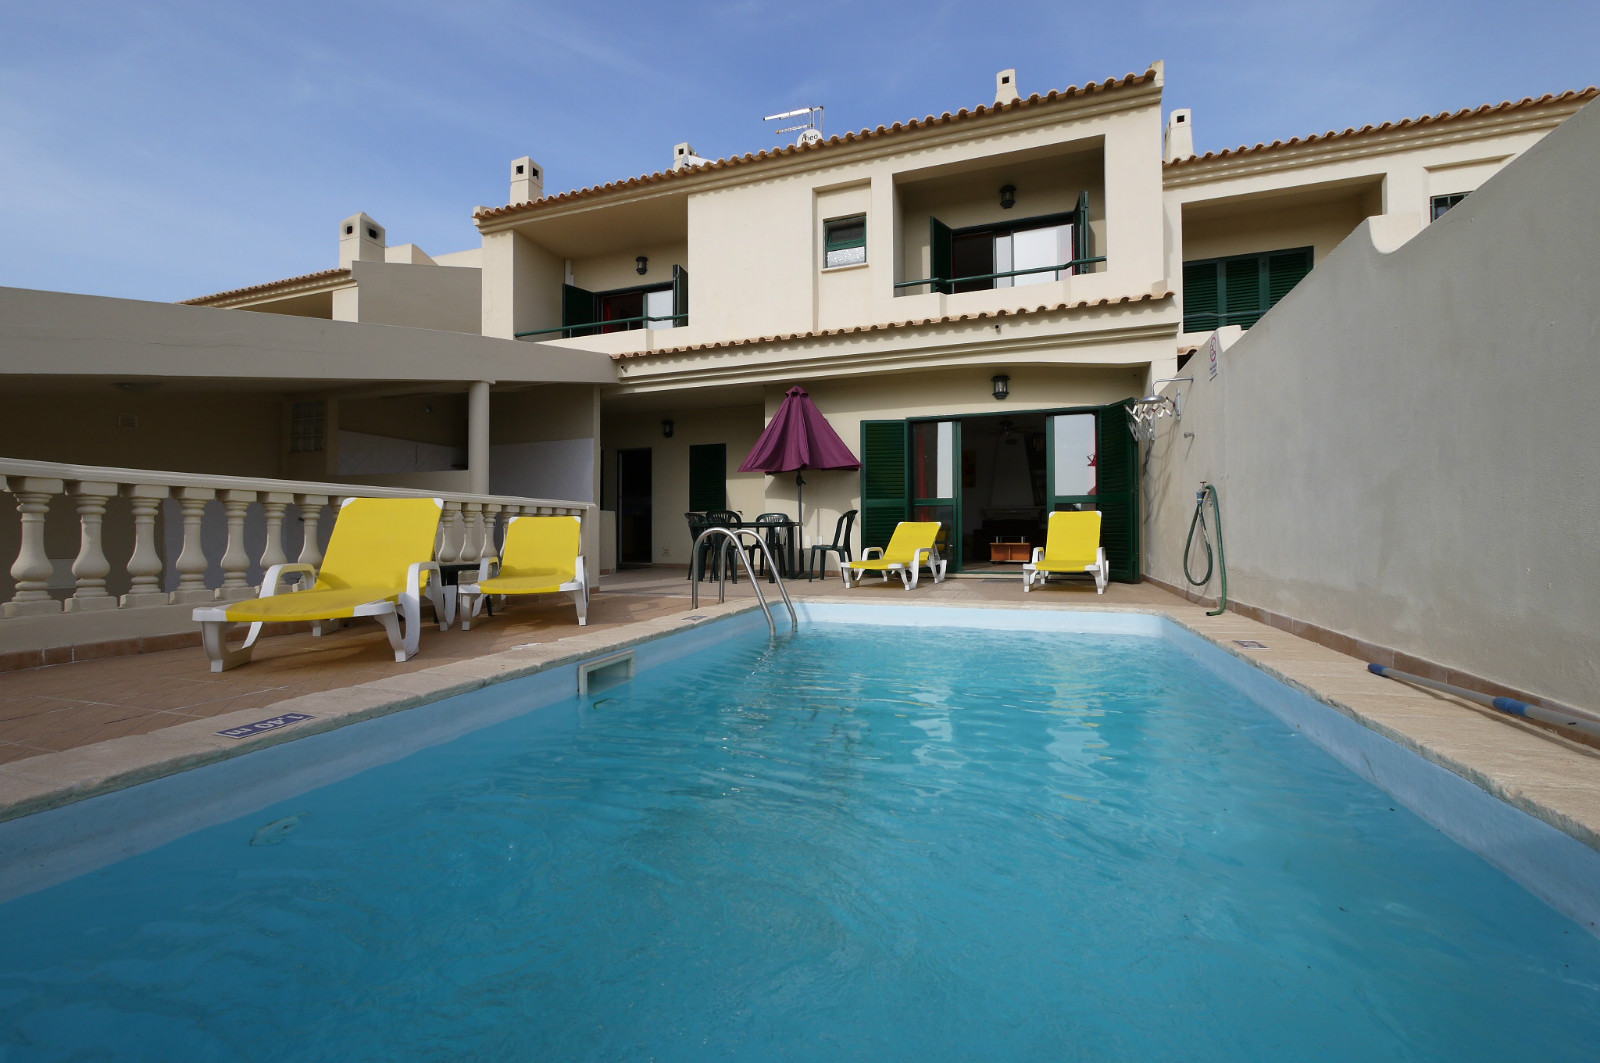 Villa A/C, 2 Bedrooms villa with always sunny, south facing pool & pool terrace.